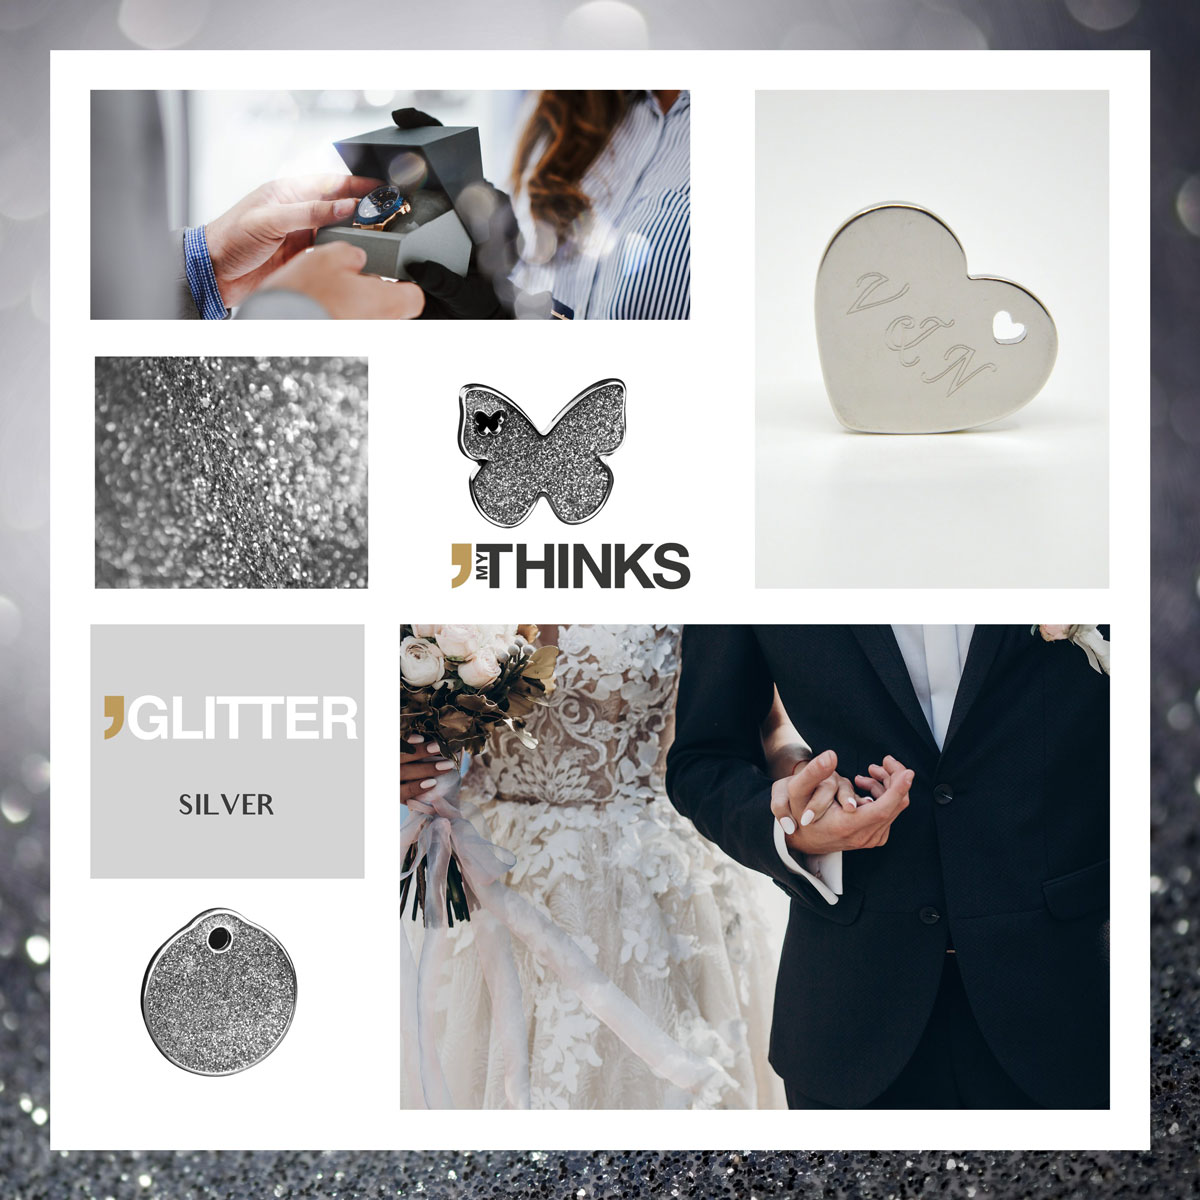 Mood board Glitter collection gifts with shiny silver enamelling on chromed zamak charm personalized for the wedding market